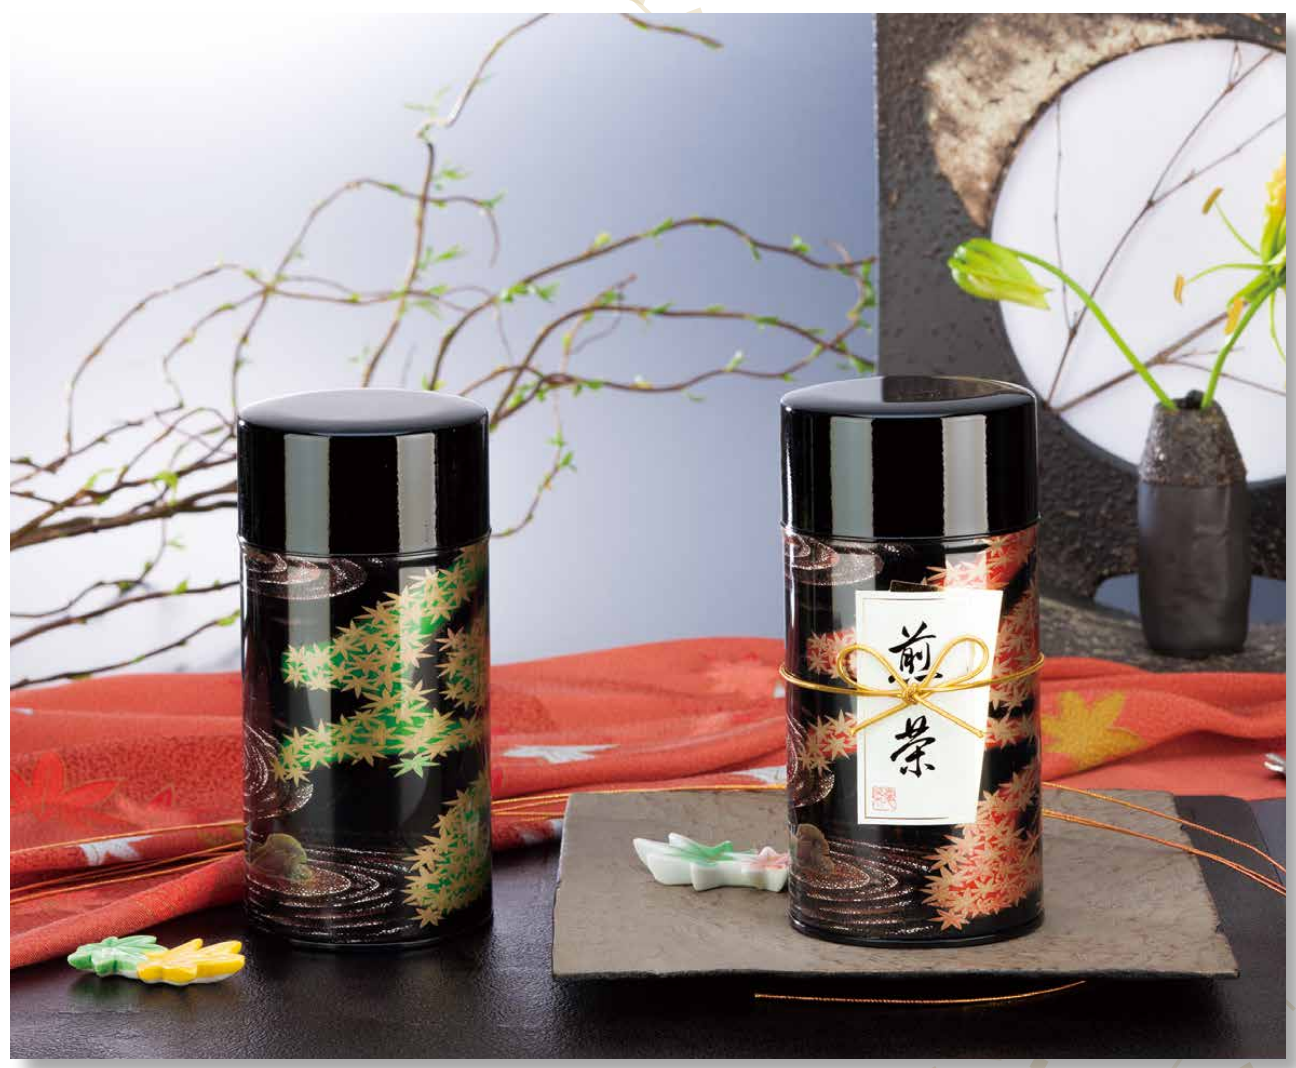 Ryu Mei Metal style tea canister for storing tea leaves, coffee, candies and others. Made in Japan.